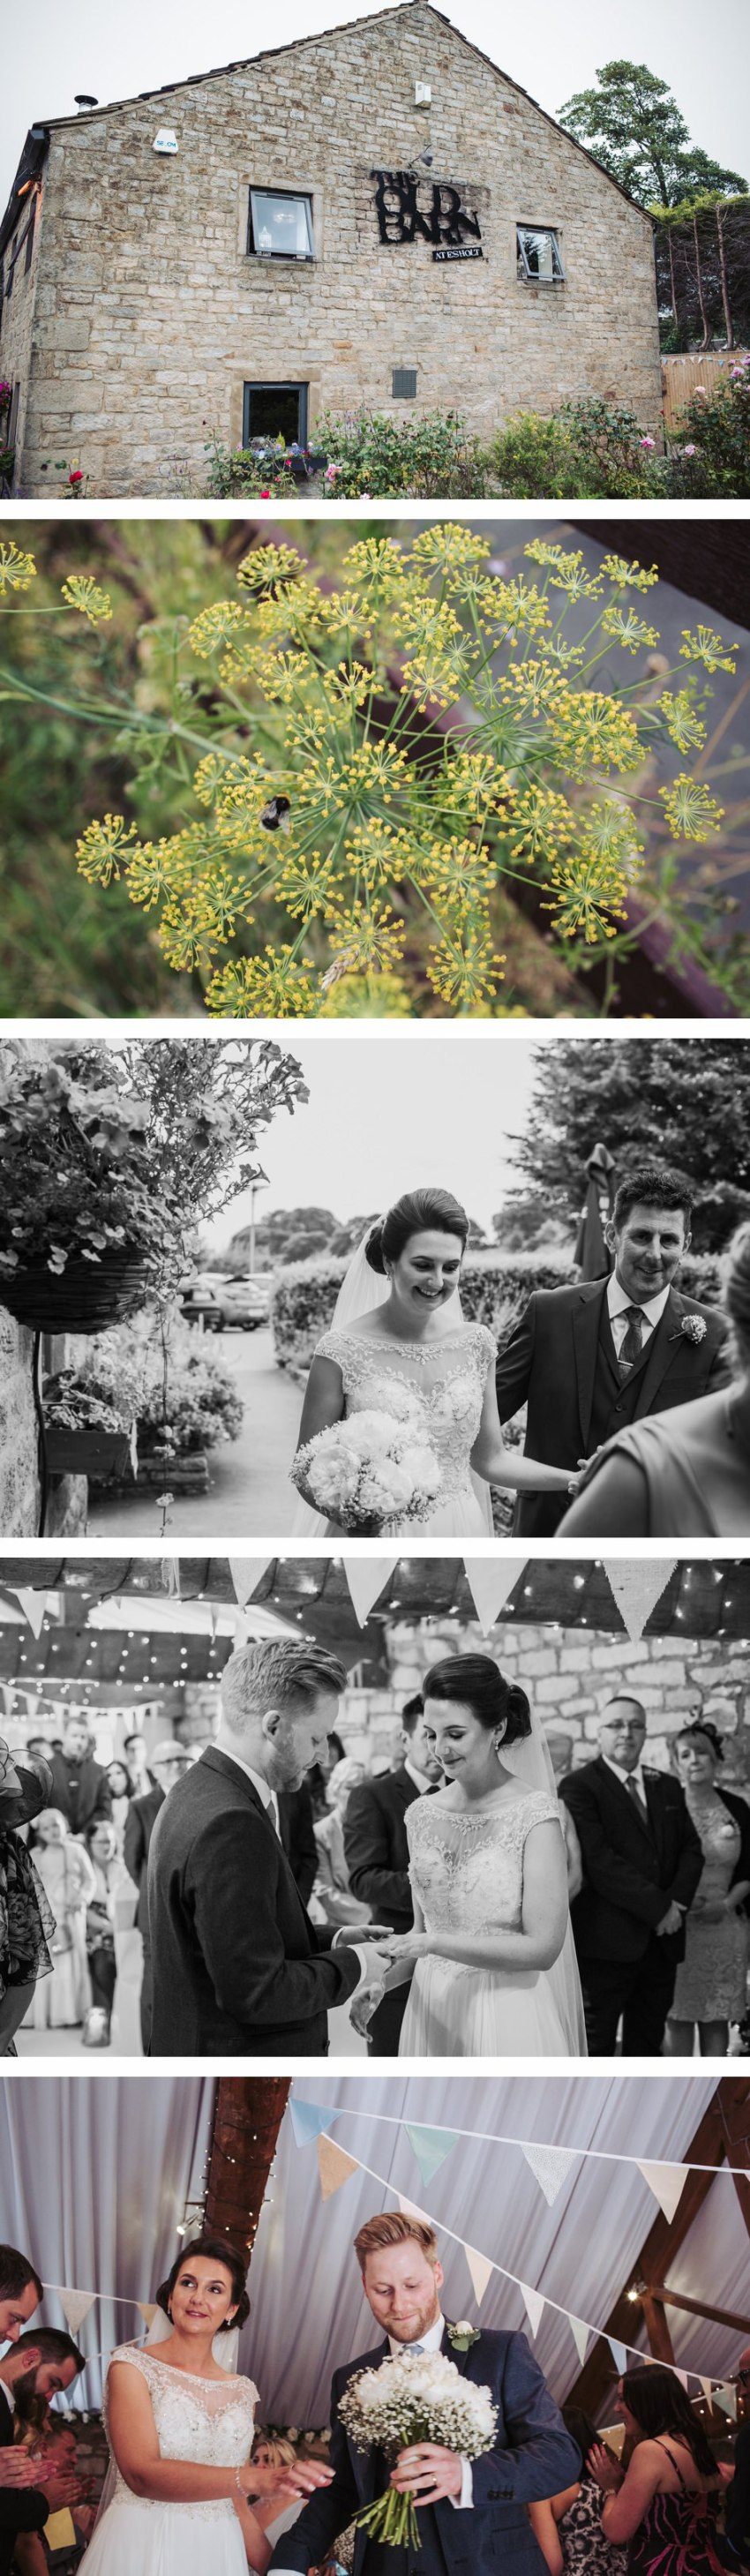 old barn baildon wedding-